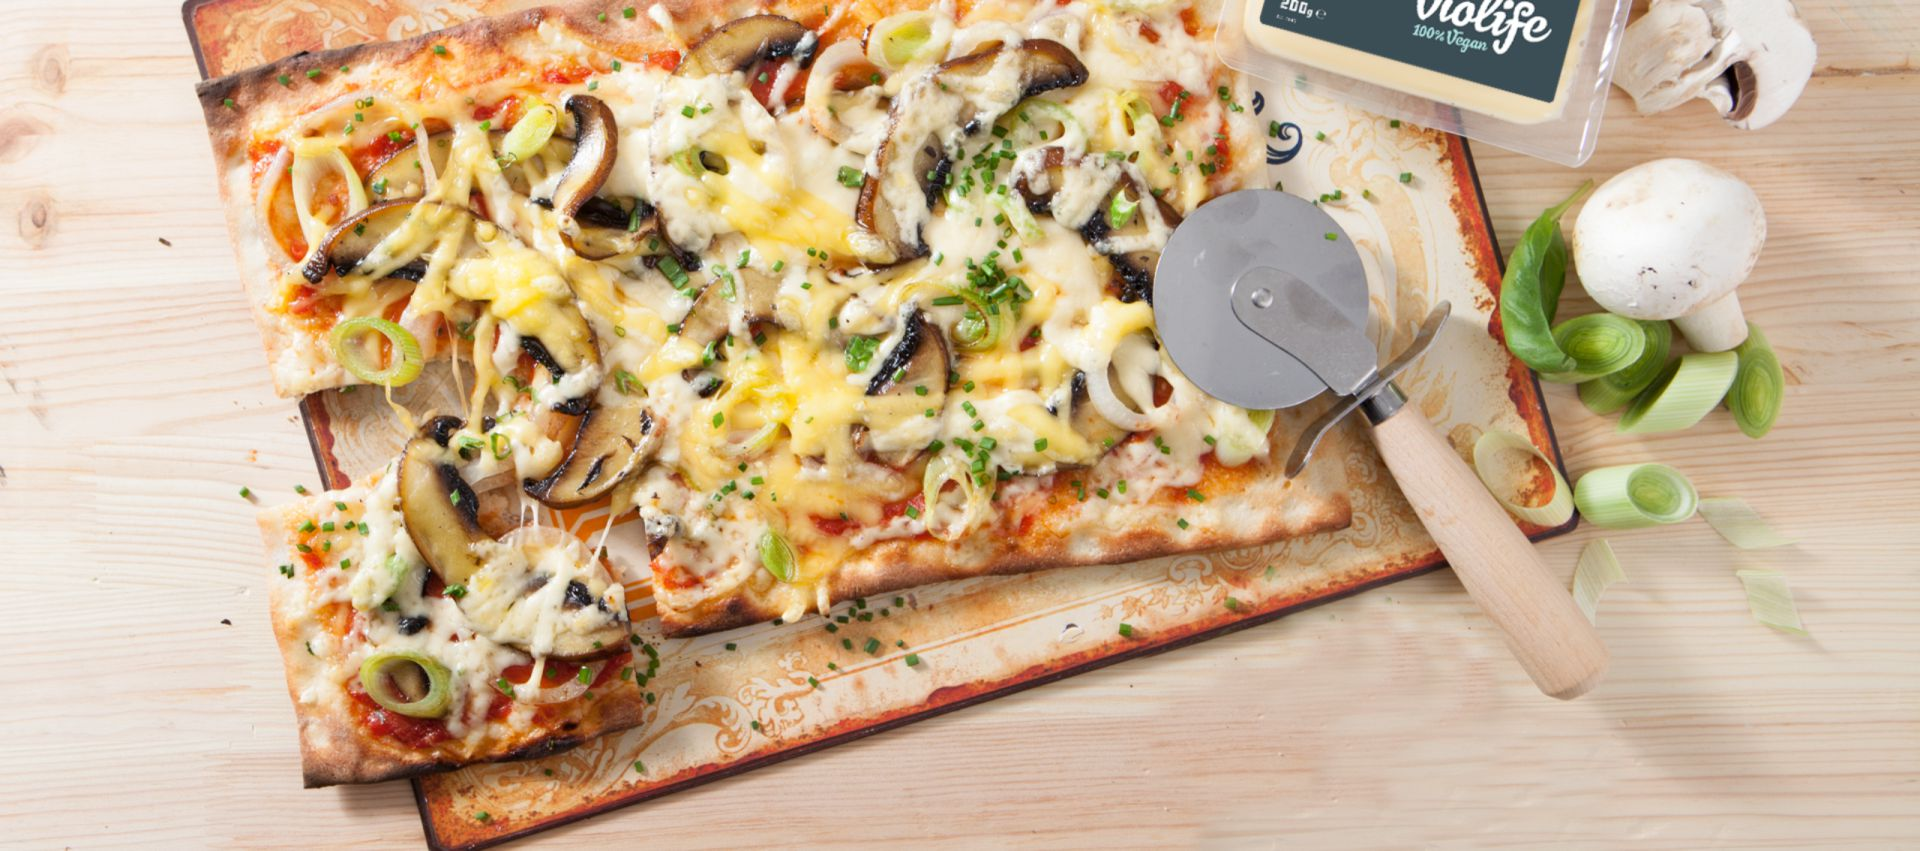 Leek, Mushroom and Pesto Pizza photo